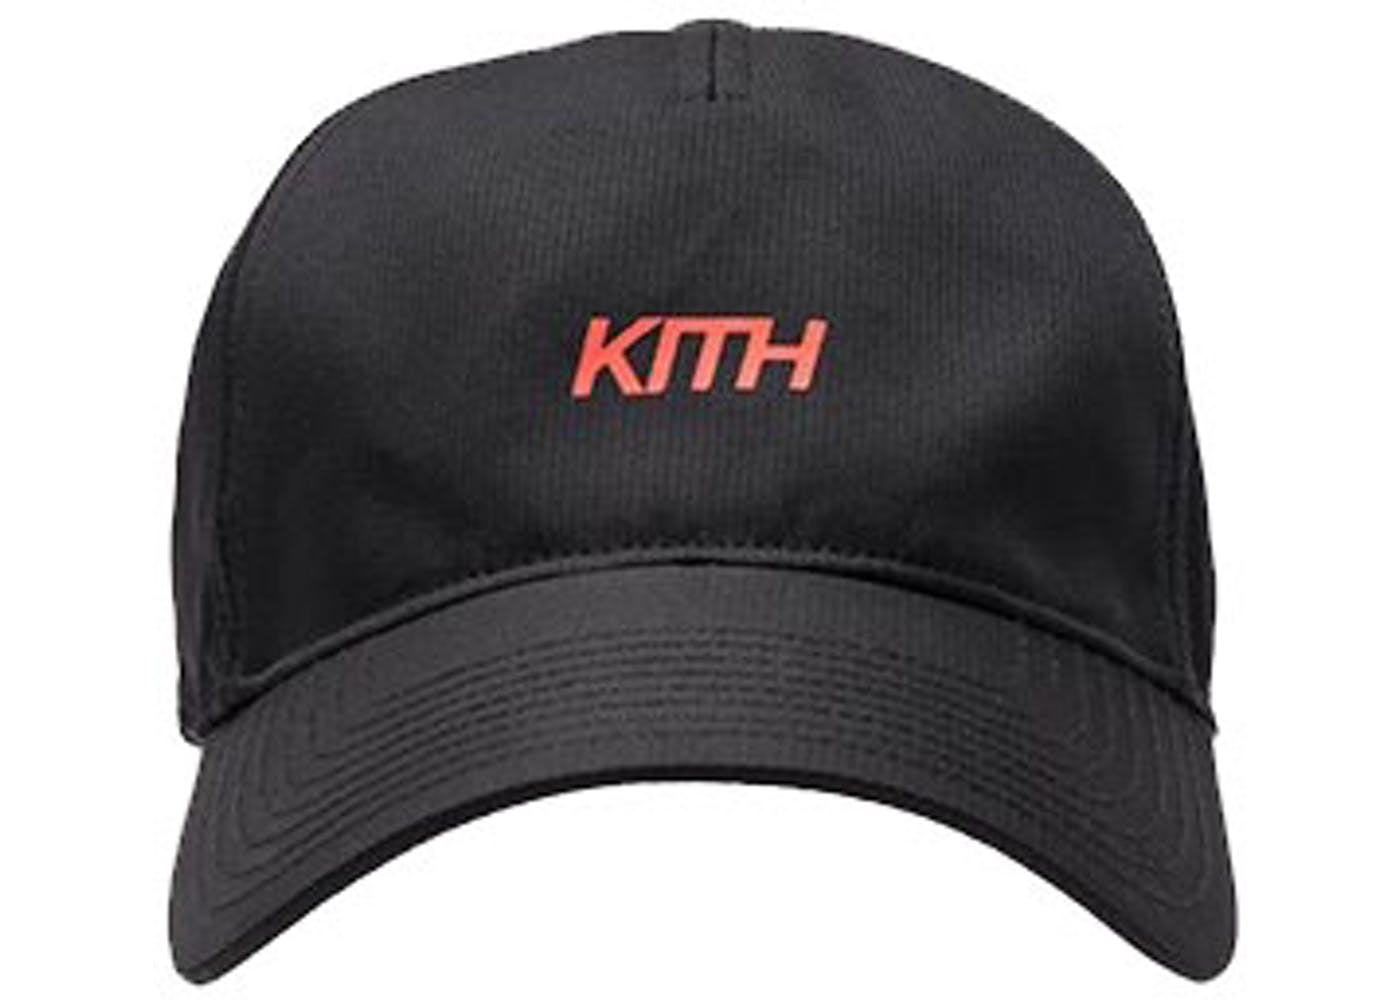 6f9bddace09bd Buy and Sell Kith Accessories